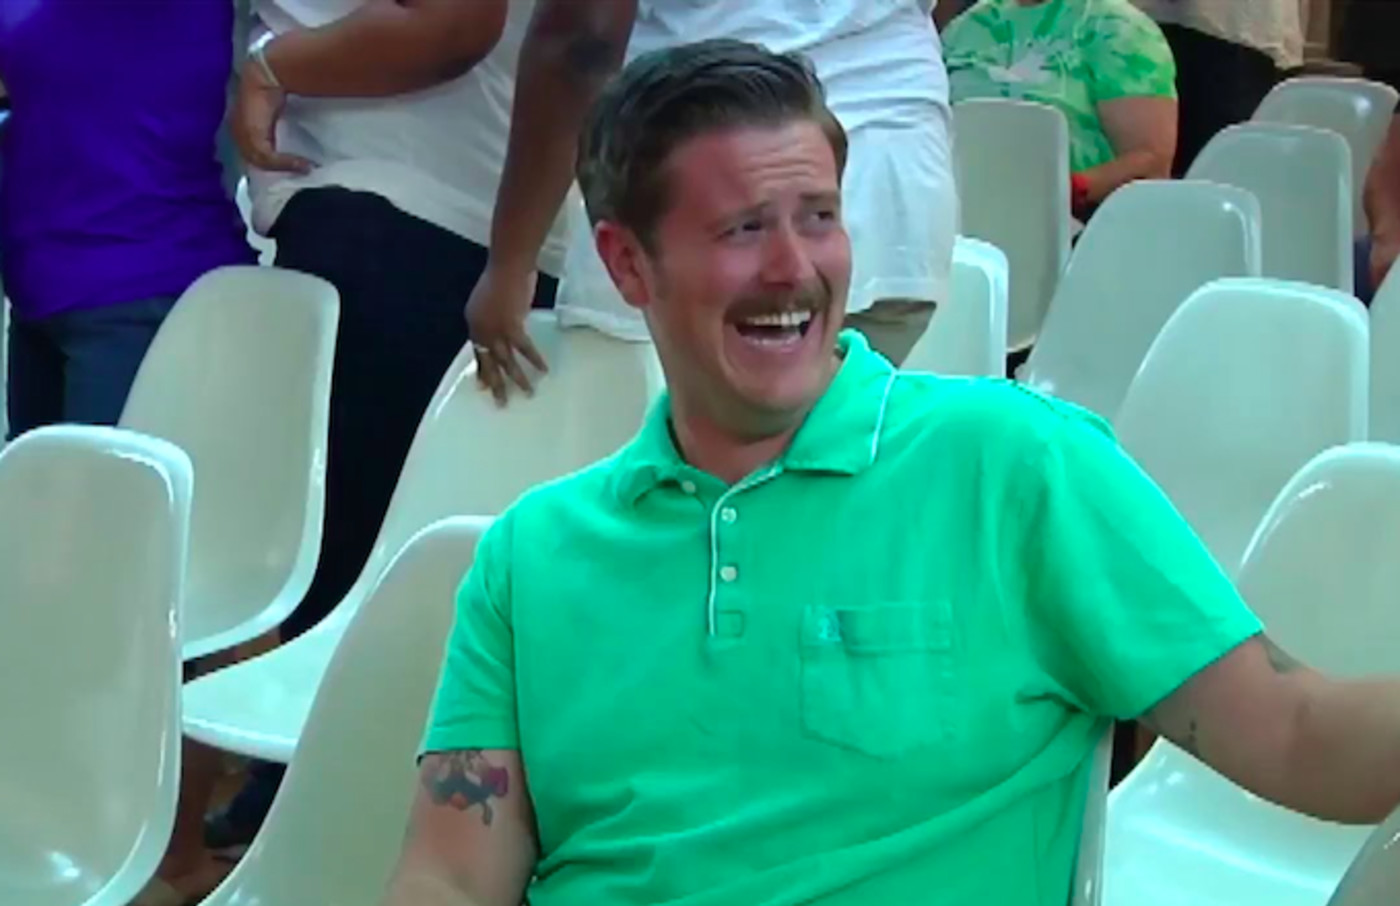 GreenShirtGuy Becomes Internet Legend After Laughing Uncontrollably at  Trump Supporters  Complex